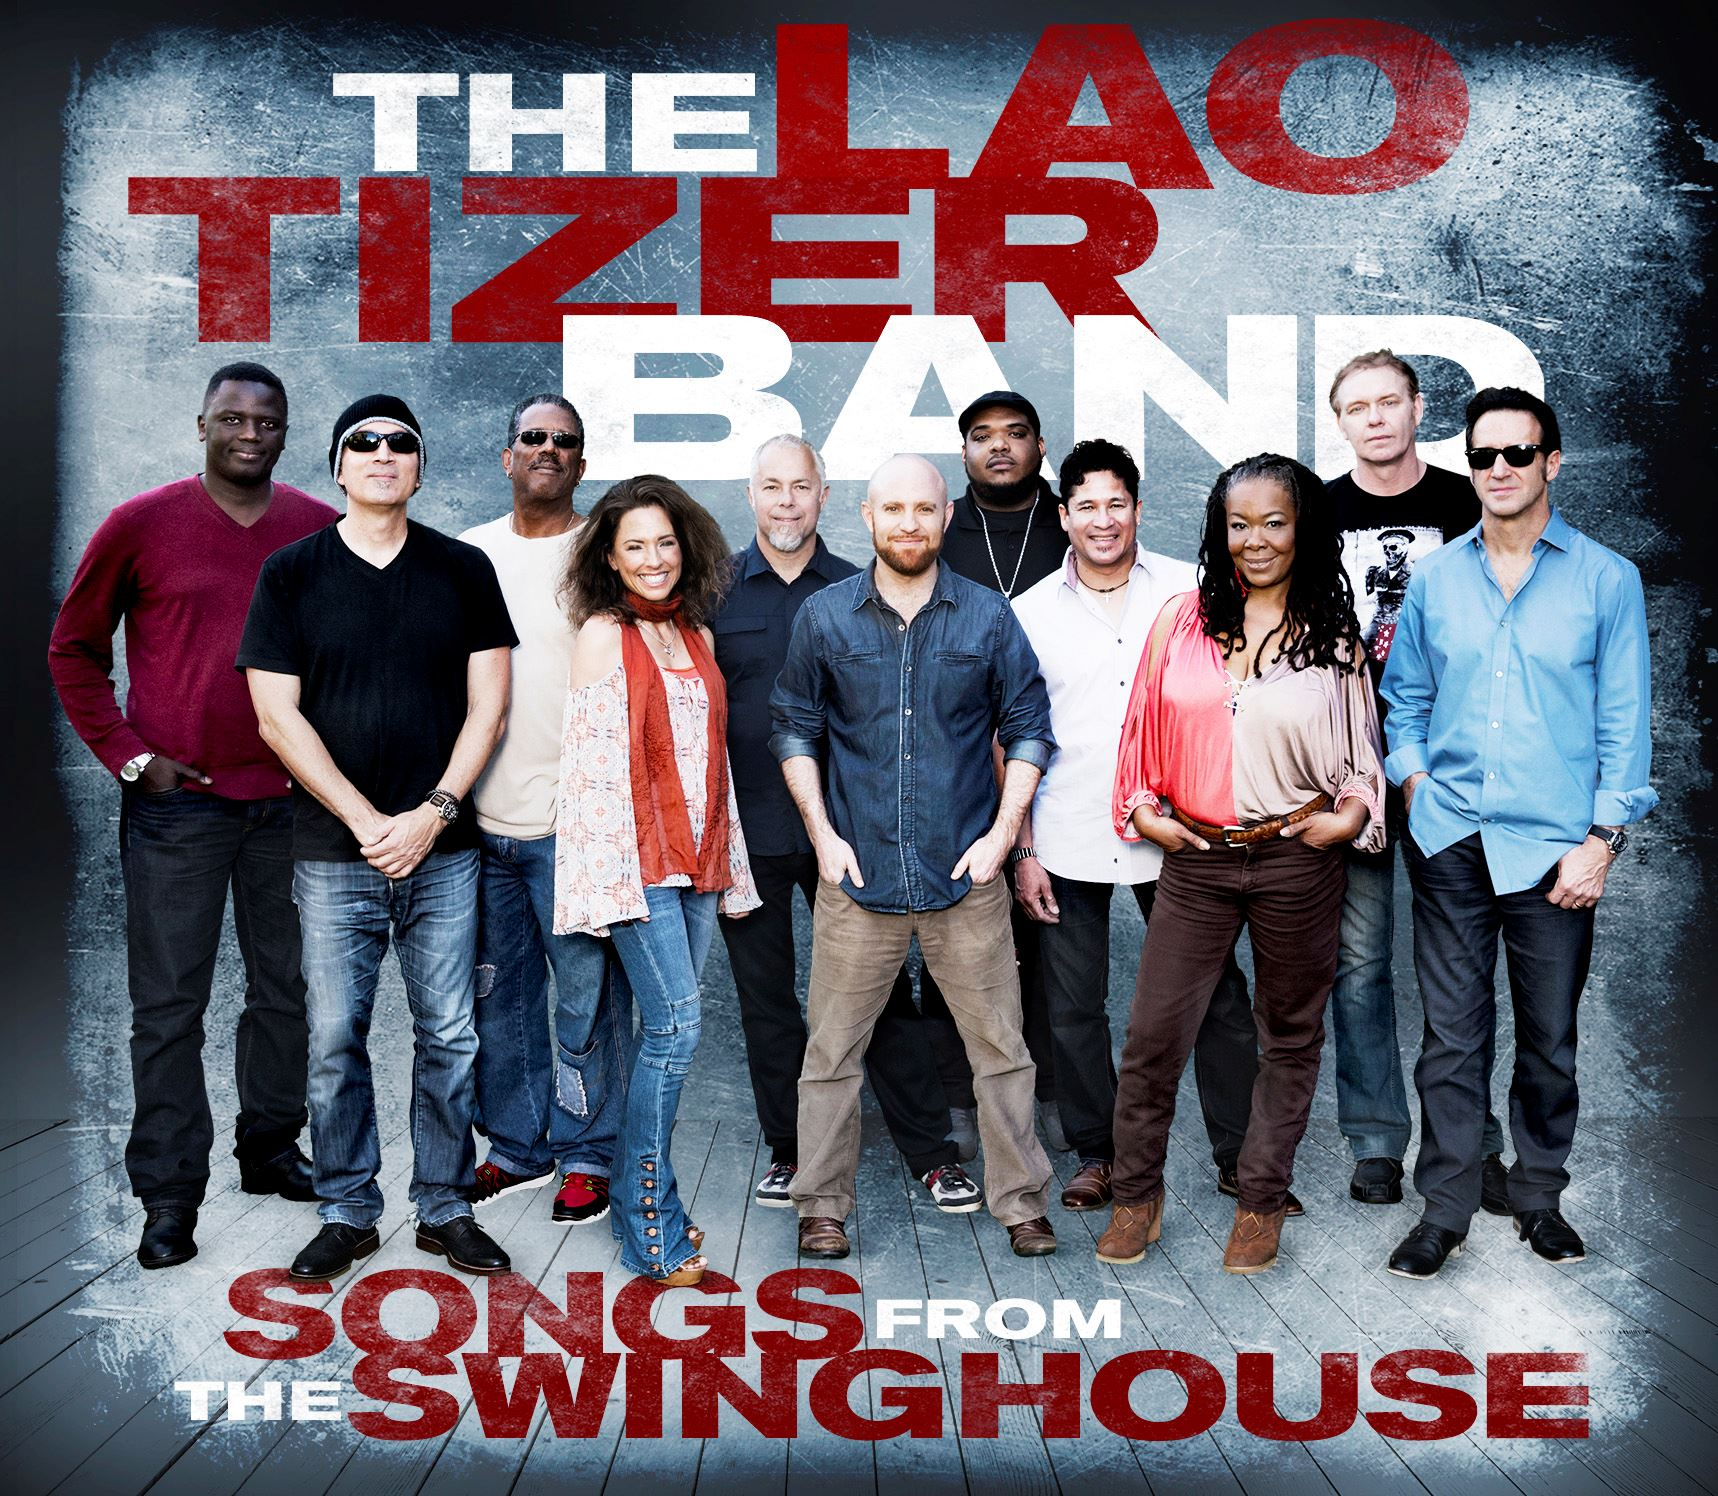 Lao Tizer Band - Songs from the Swinghouse!